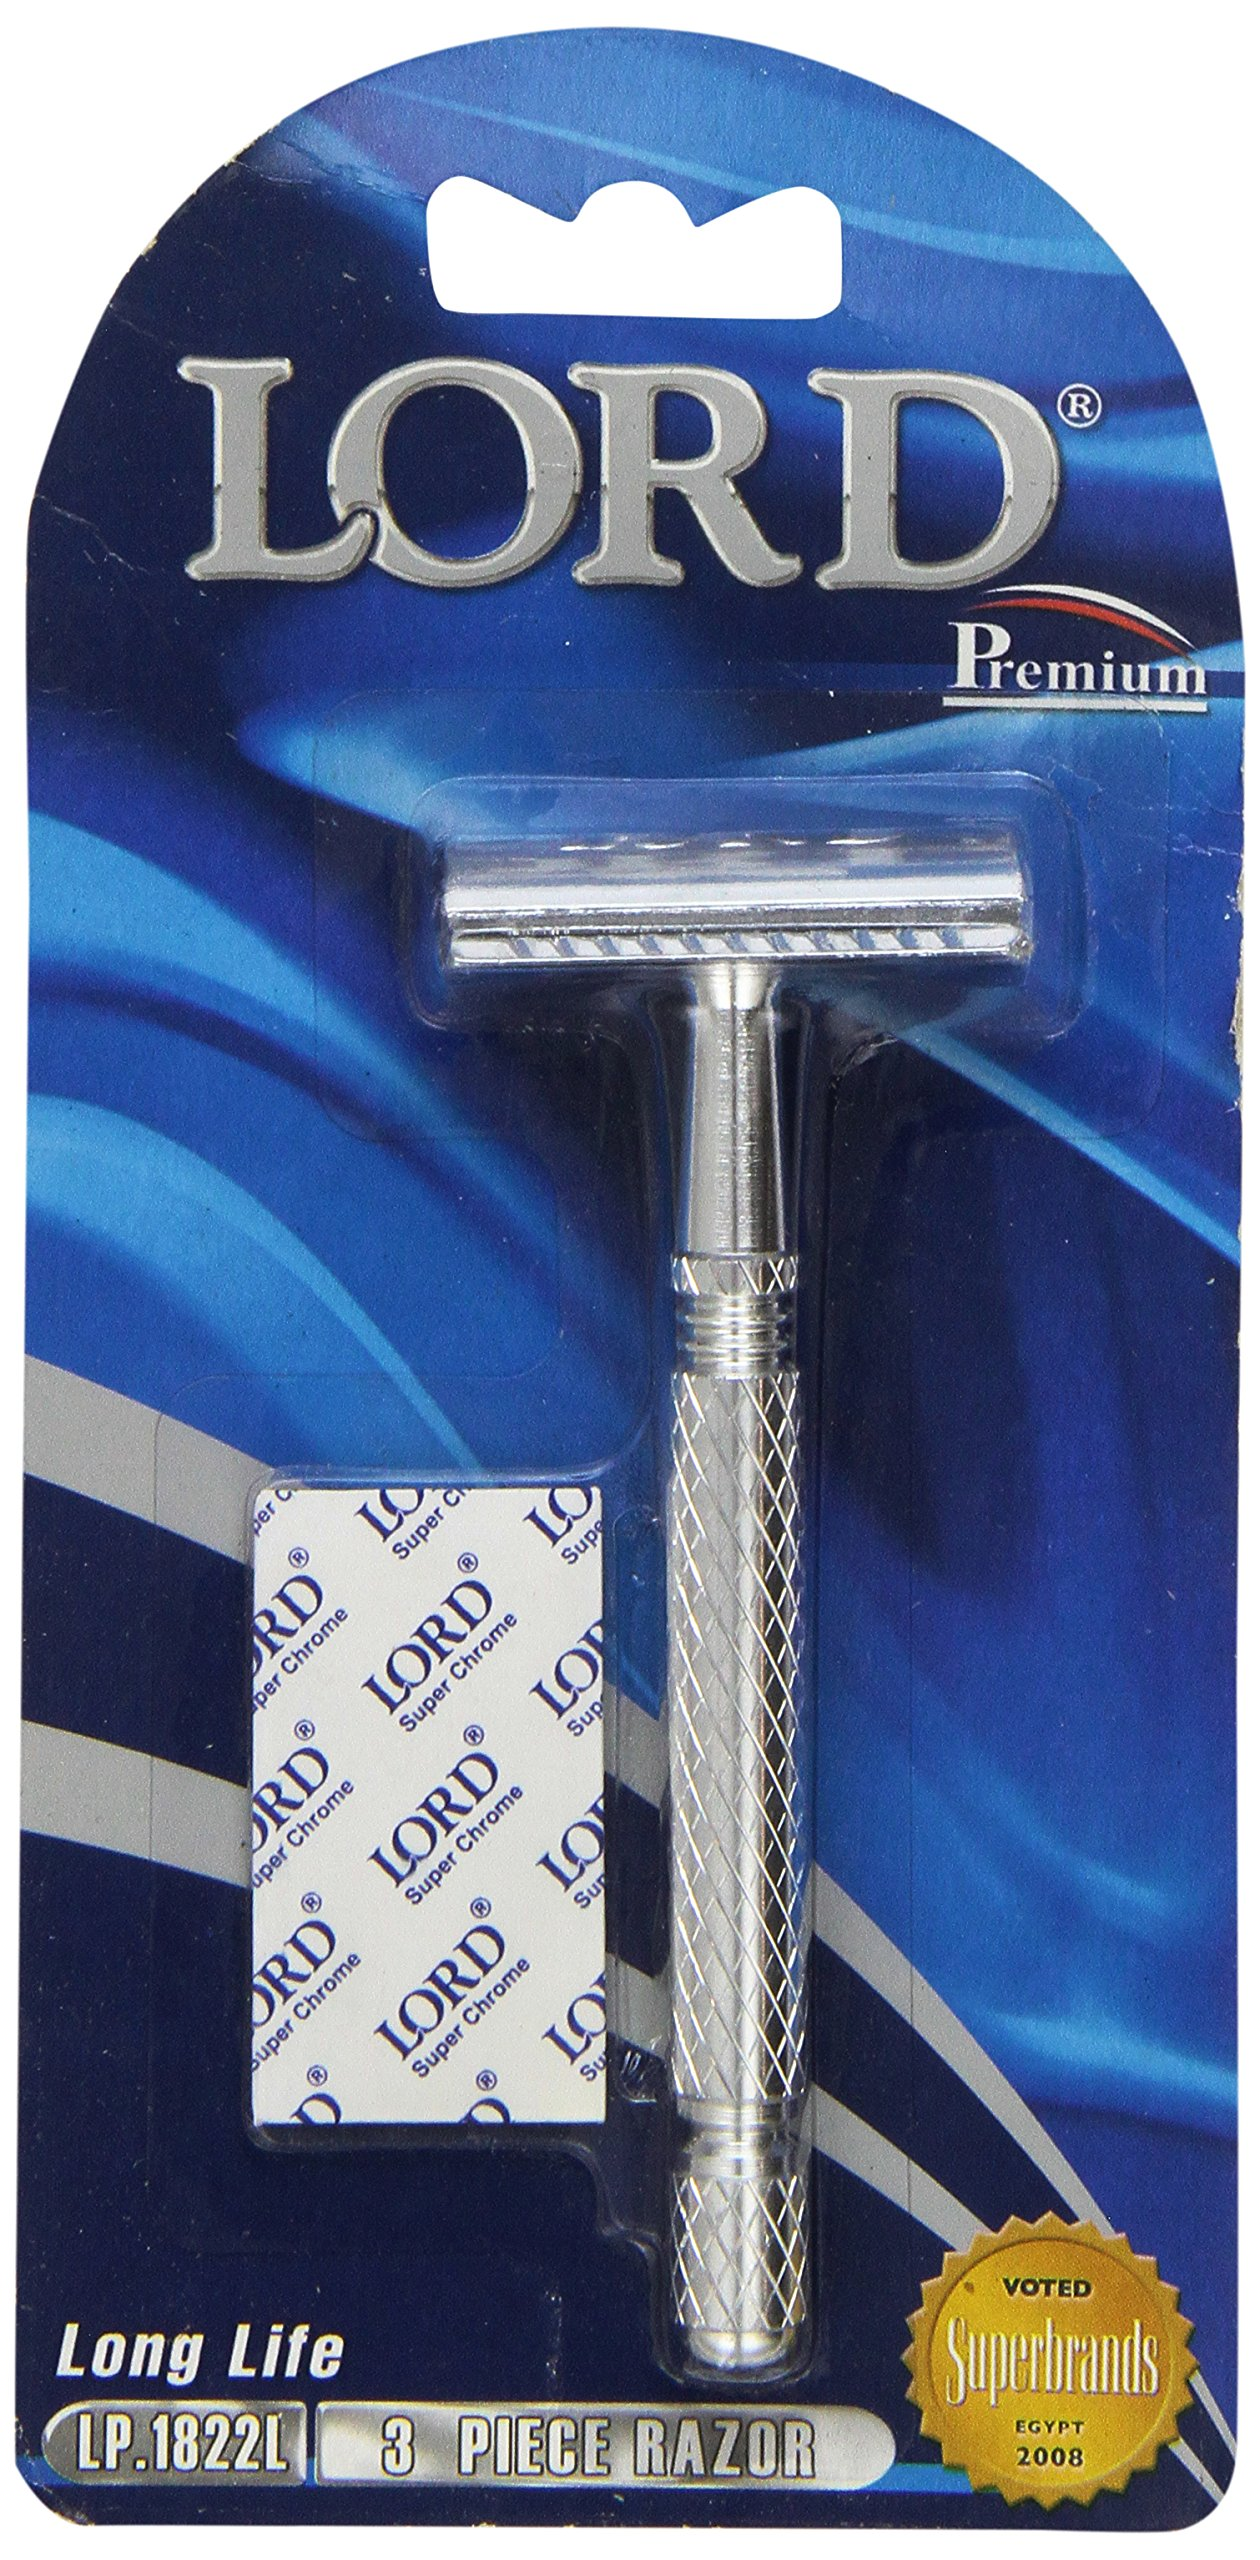 Lord Premium Safety Razor Model LP1822L aka L6